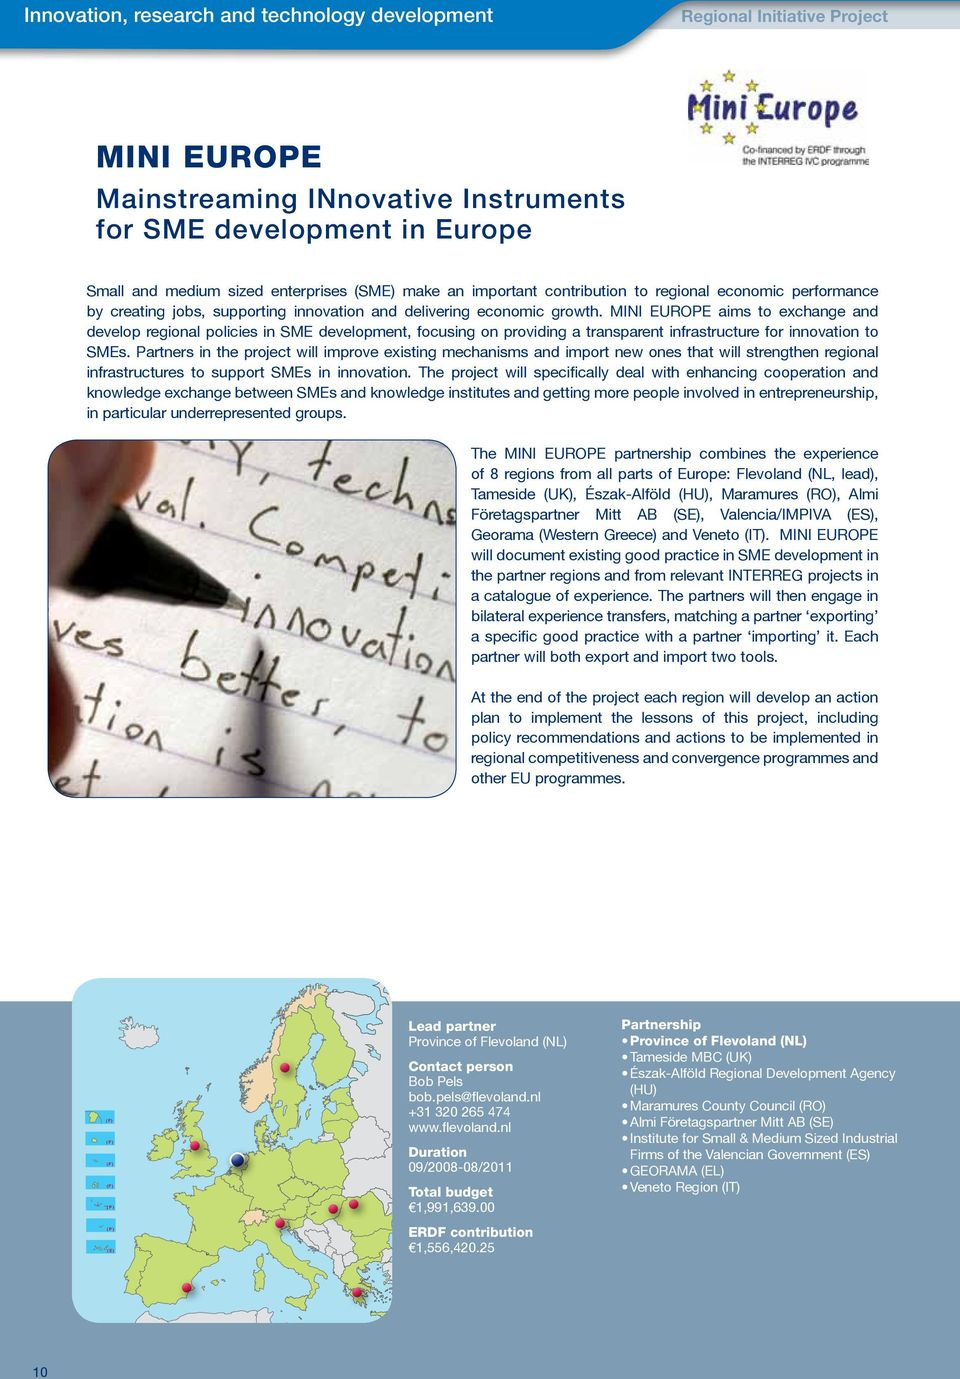 MINI EUROPE aims to exchange and develop regional policies in SME development, focusing on providing a transparent infrastructure for innovation to SMEs.